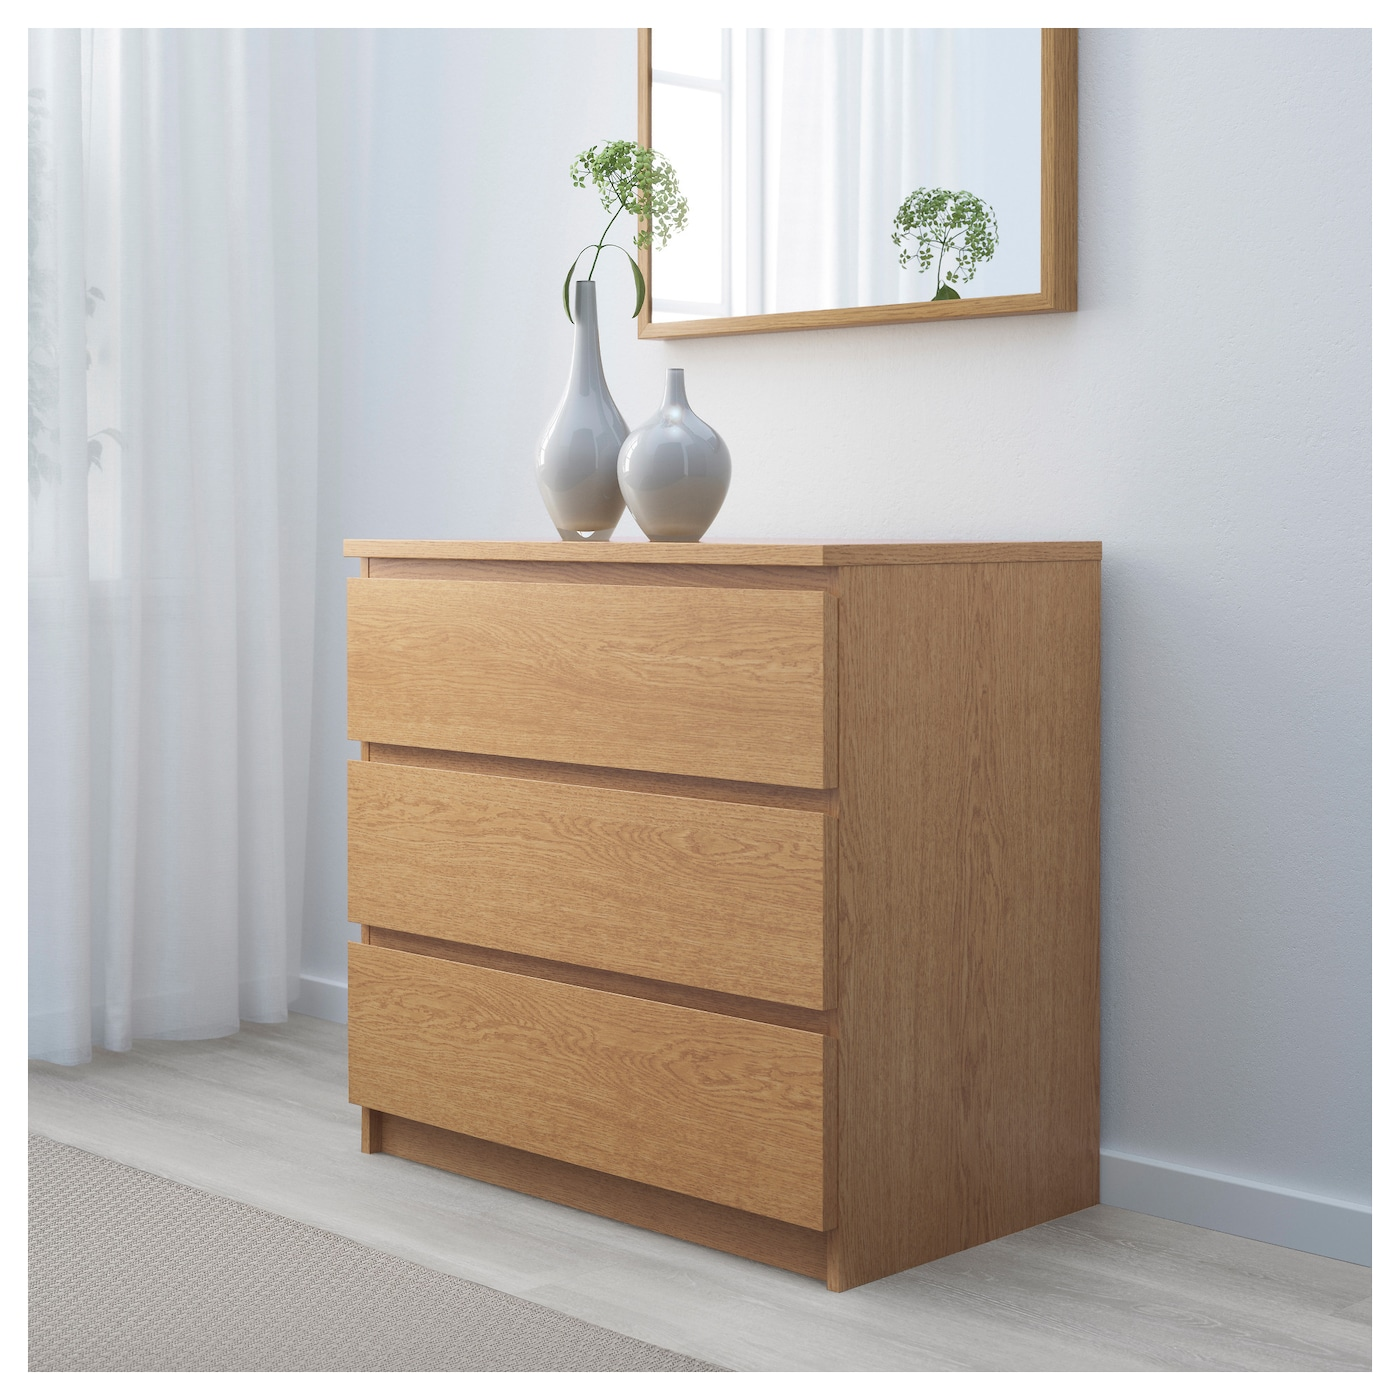 malm chest of 3 drawers oak veneer 80x78 cm ikea. Black Bedroom Furniture Sets. Home Design Ideas